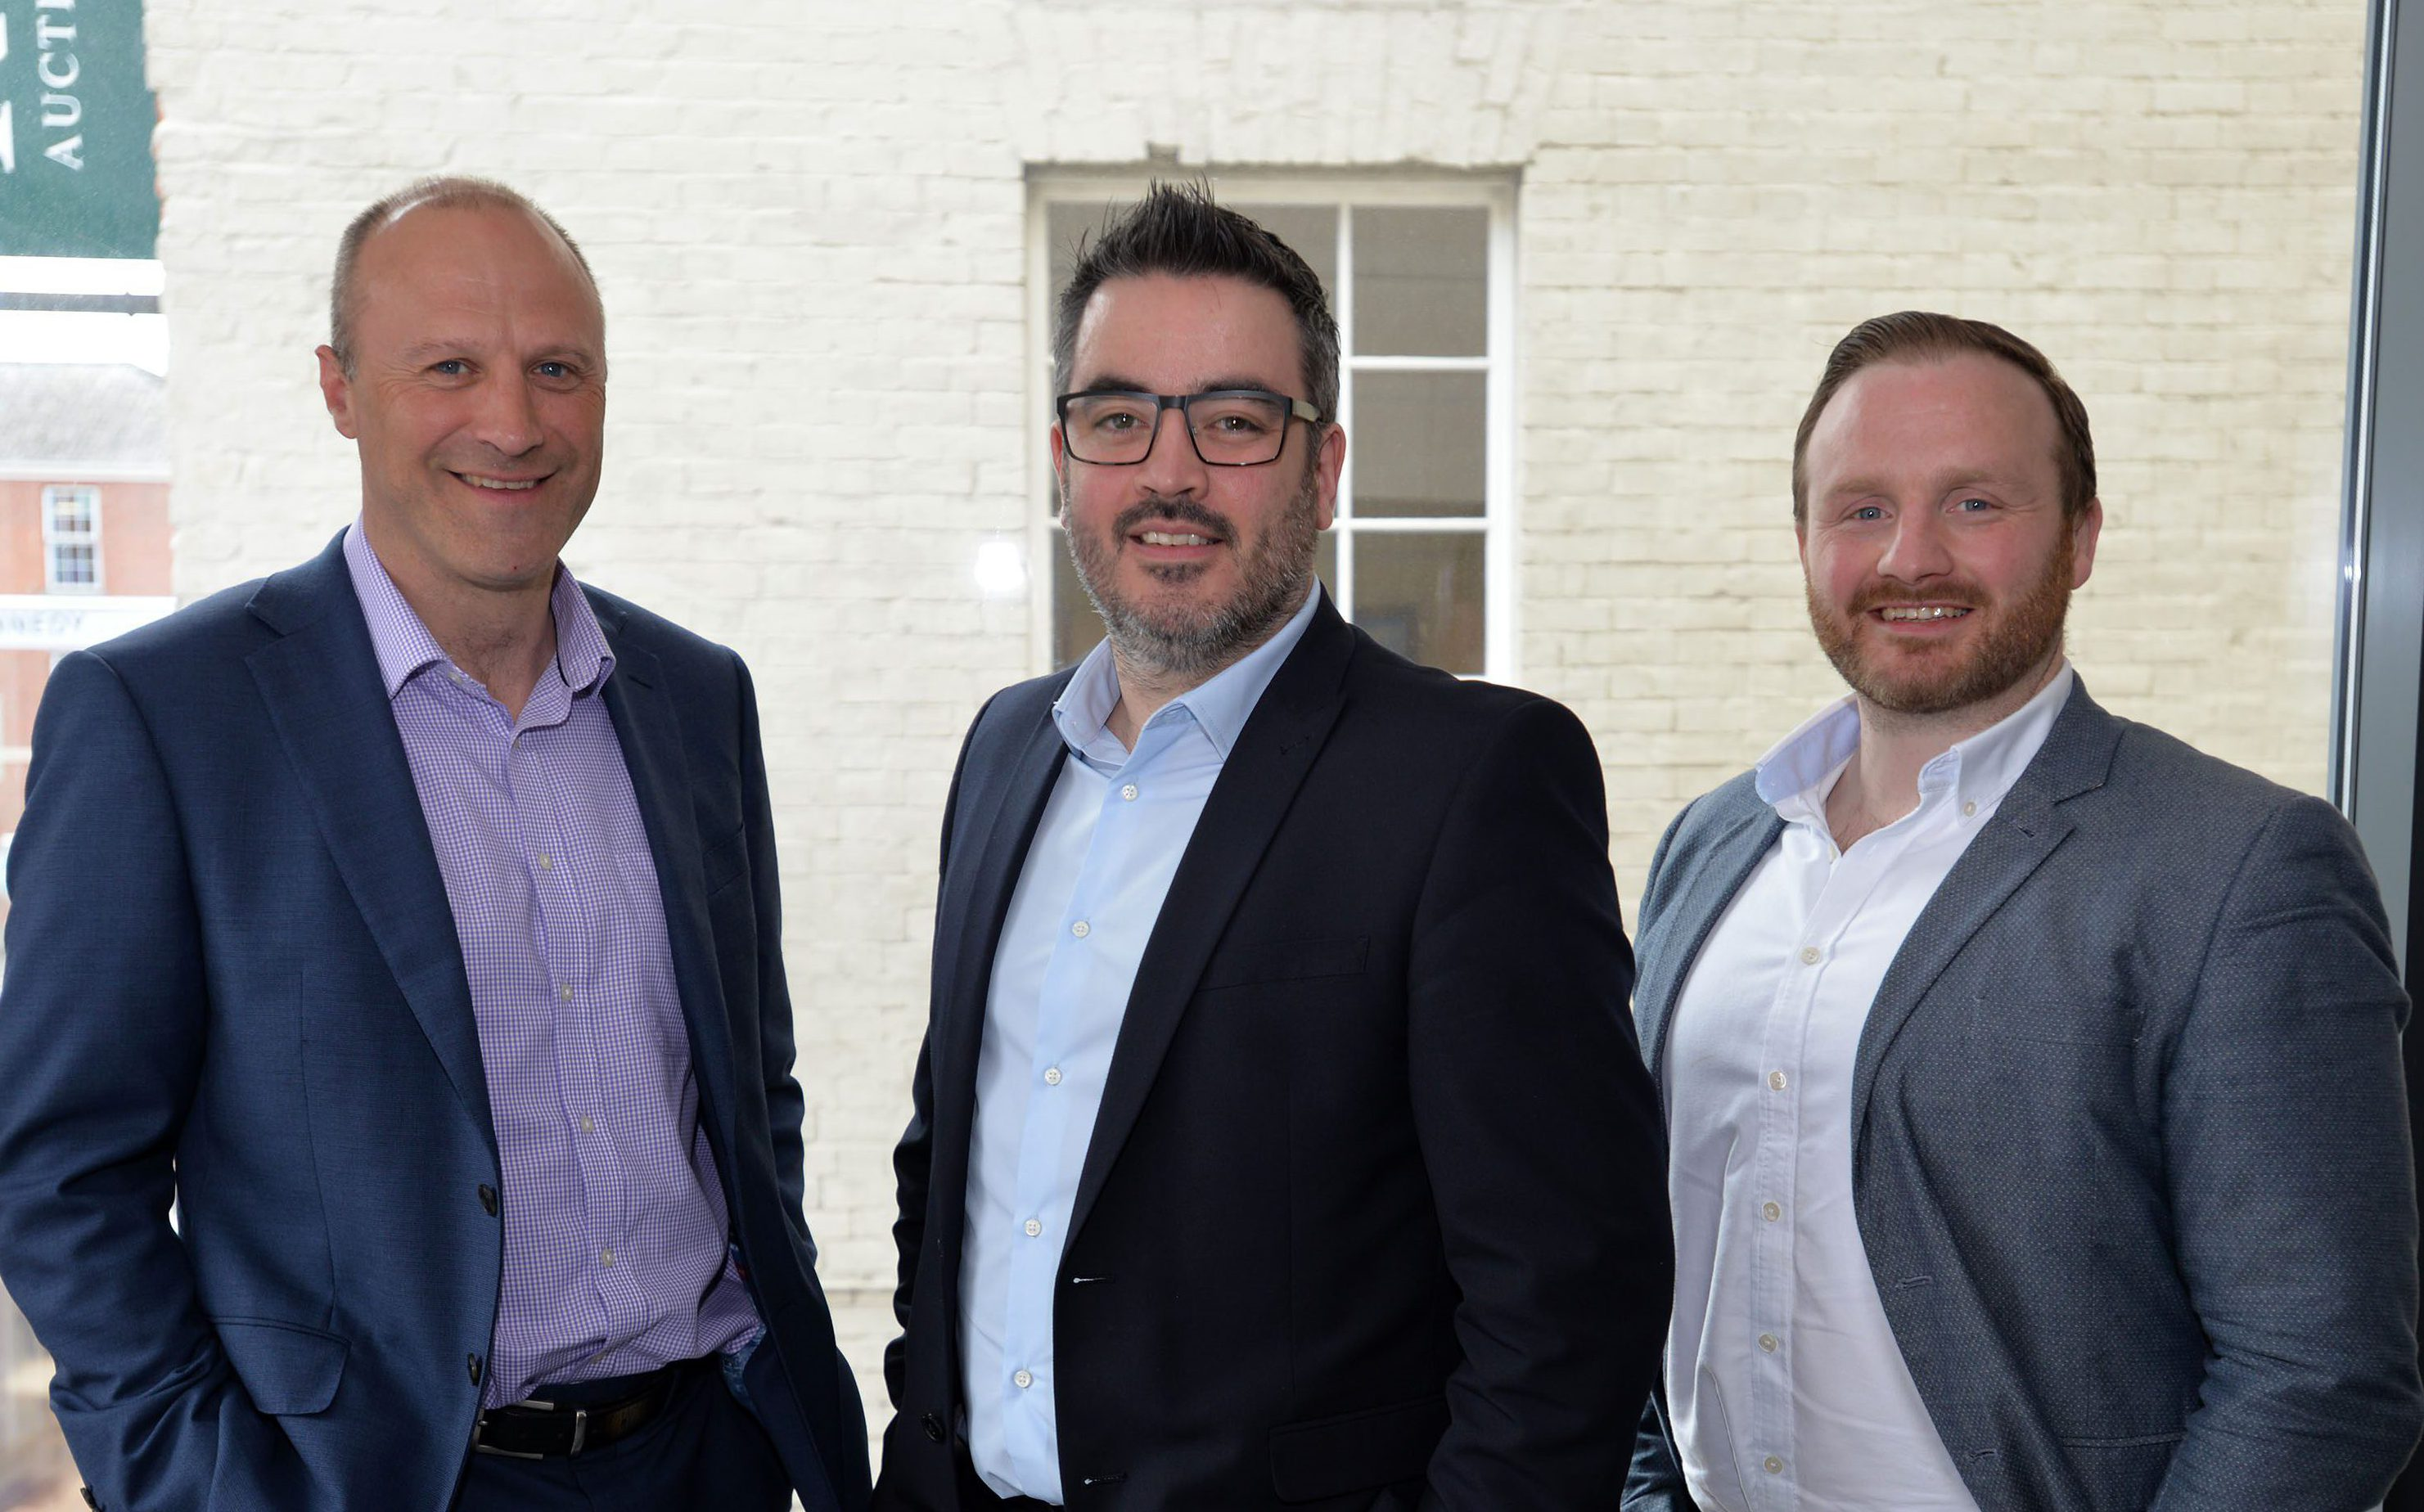 Networking at the Digital DNA has led to a burgeoning partnership between two local companies, Lisney and The Tomorrow Lab, resulting in The Tomorrow Lab providing a range of digital services to Lisney